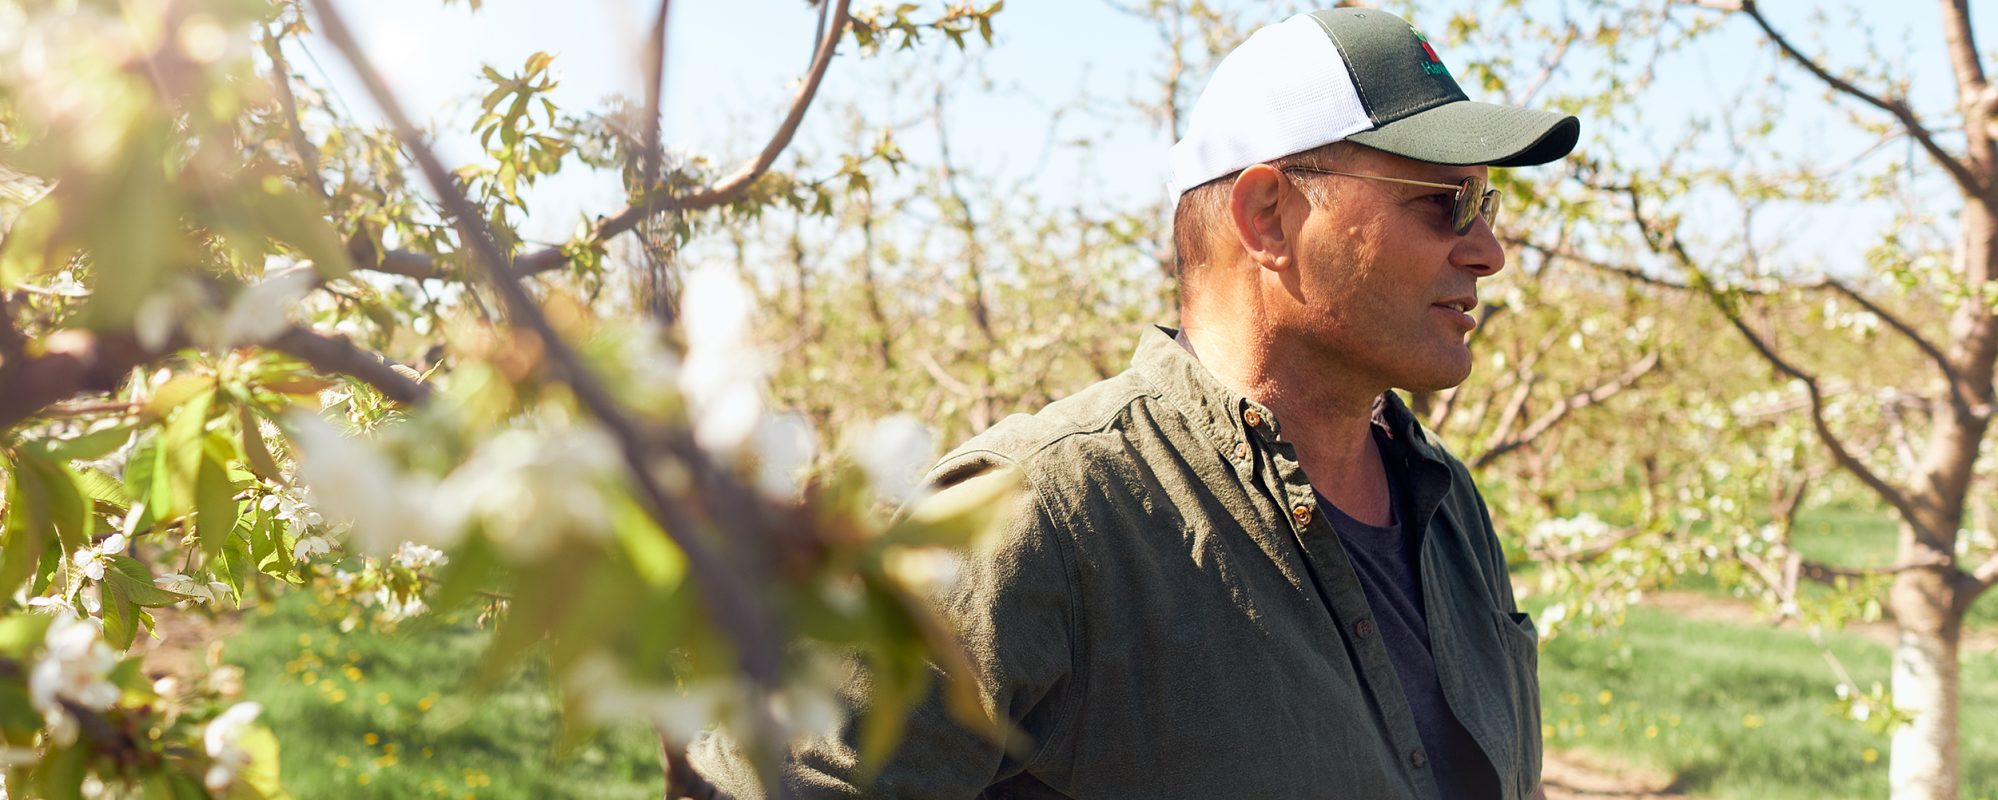 Image of farmer in apple orchard on Beene Garter's succession planning page